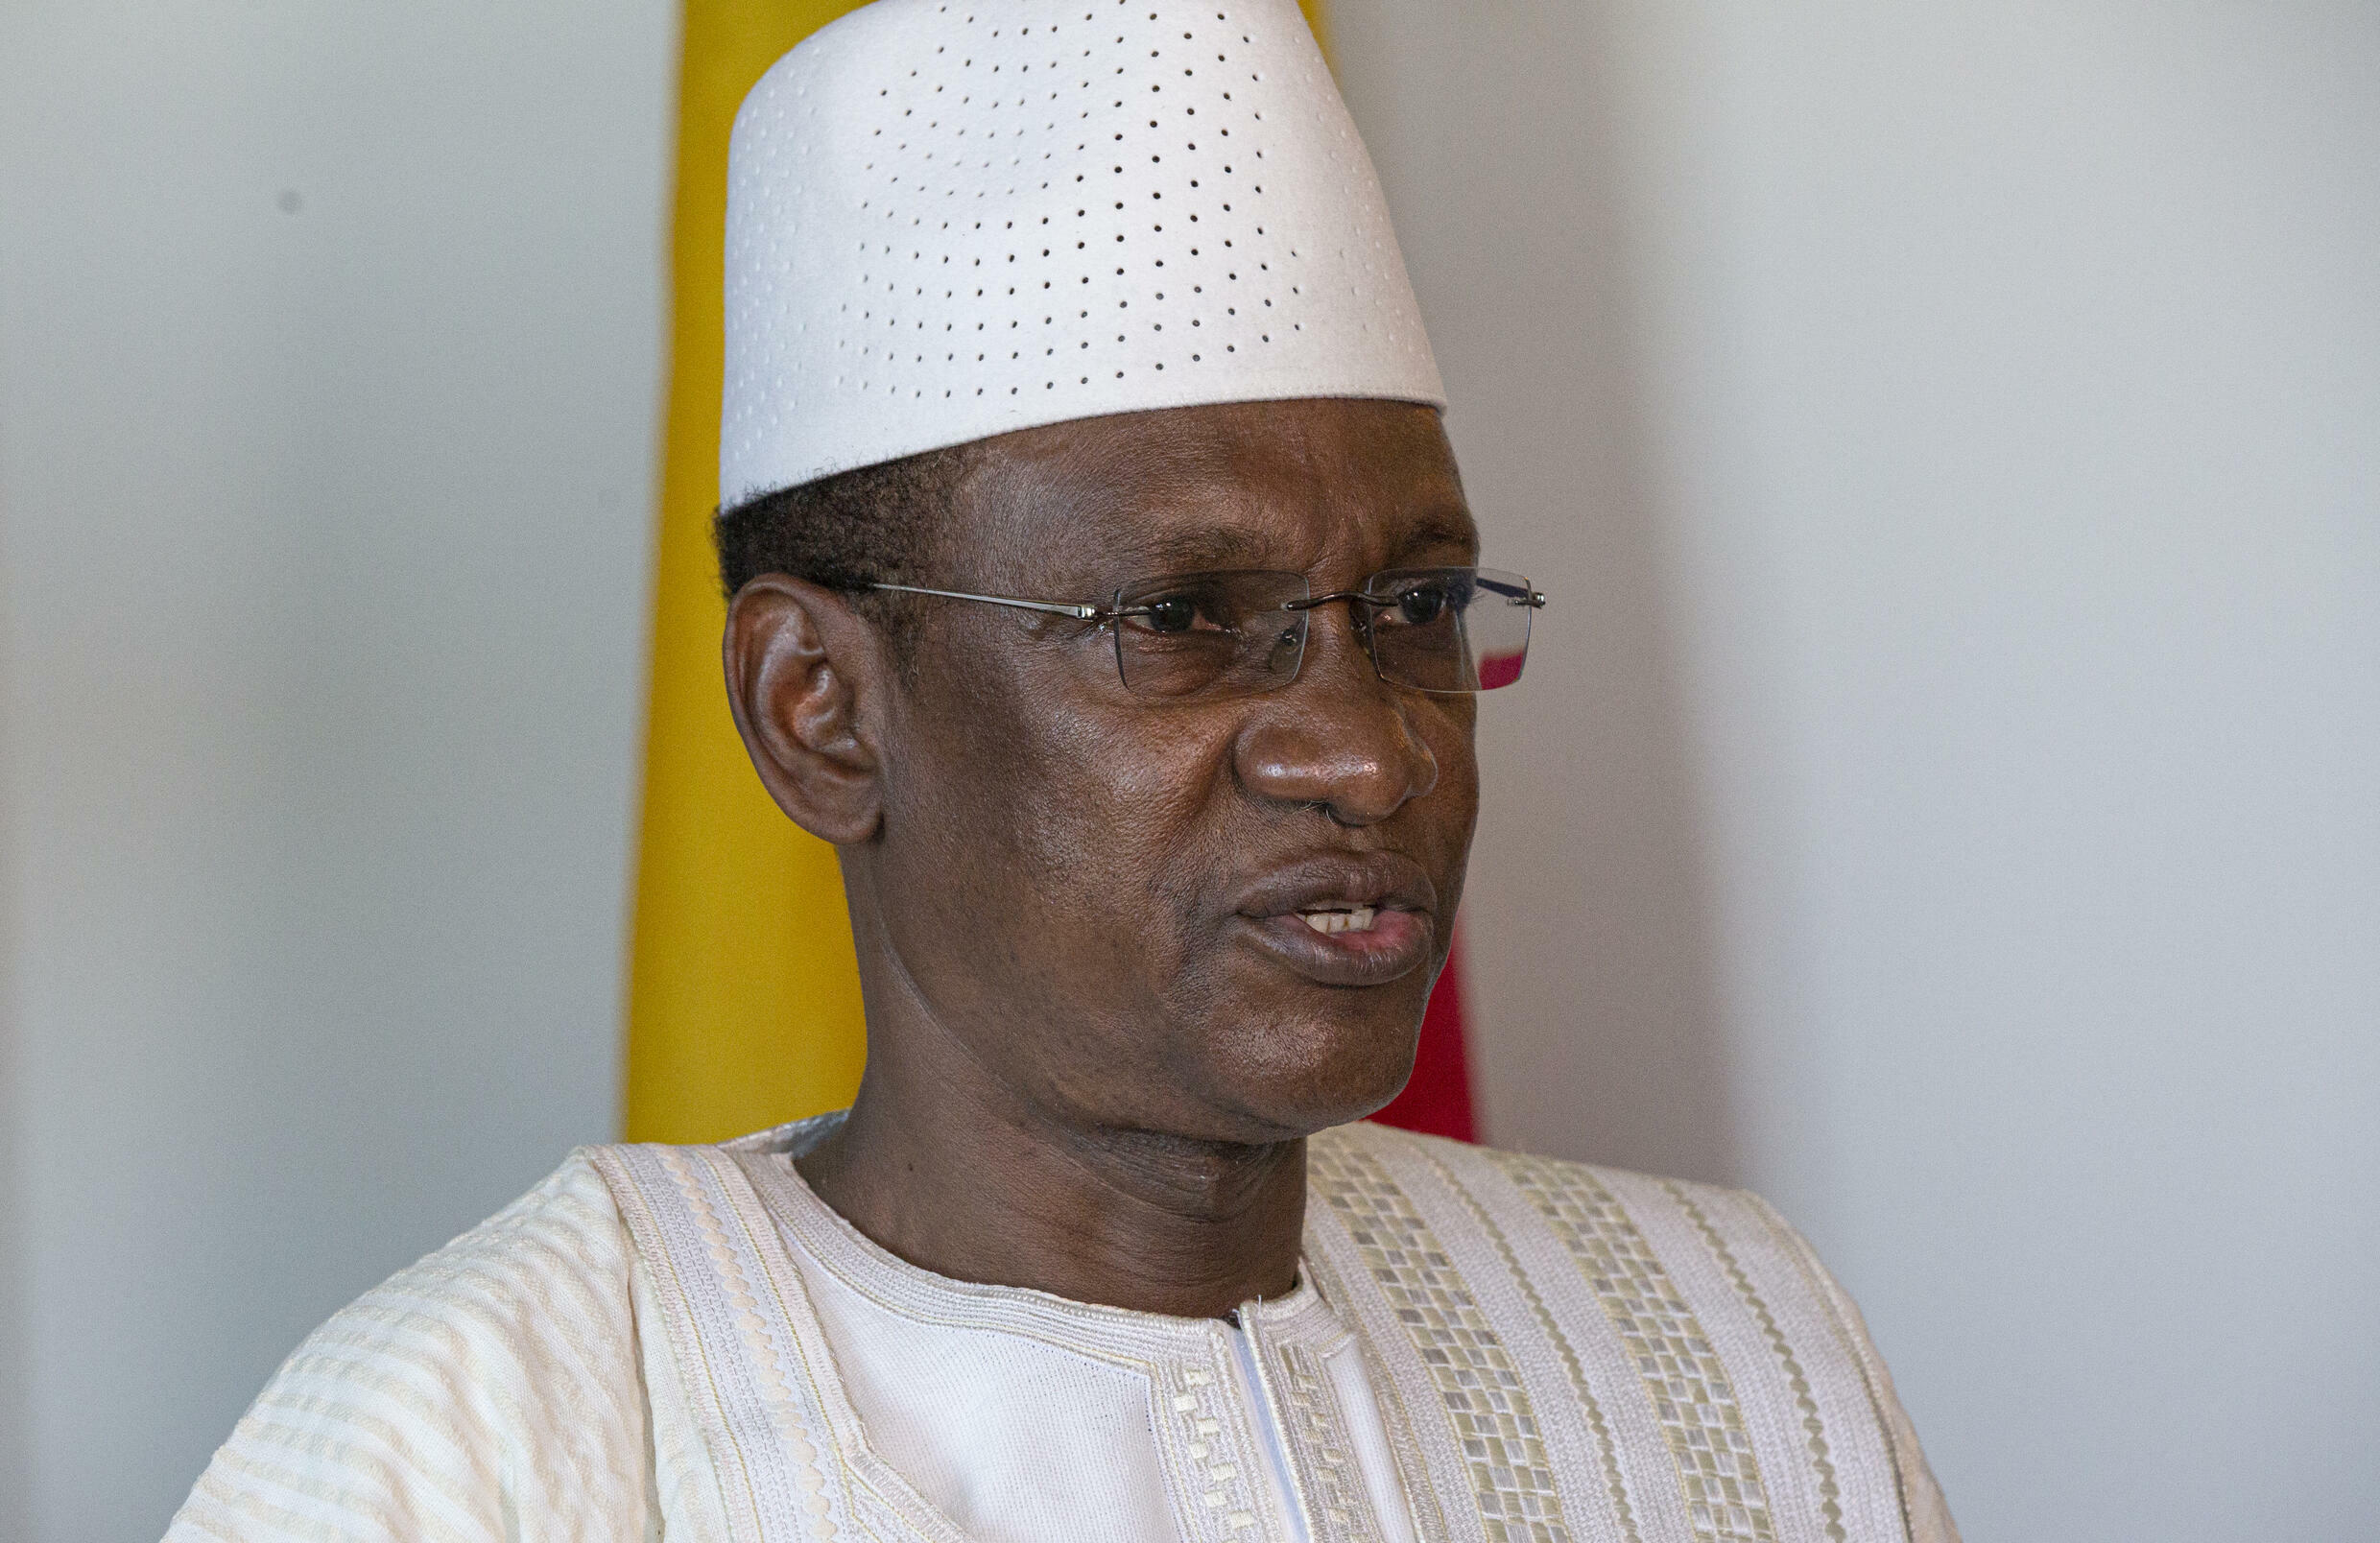 Mali's Prime Minister Choguel Maiga attends an interview with AFP on September 26, 2021 in New York